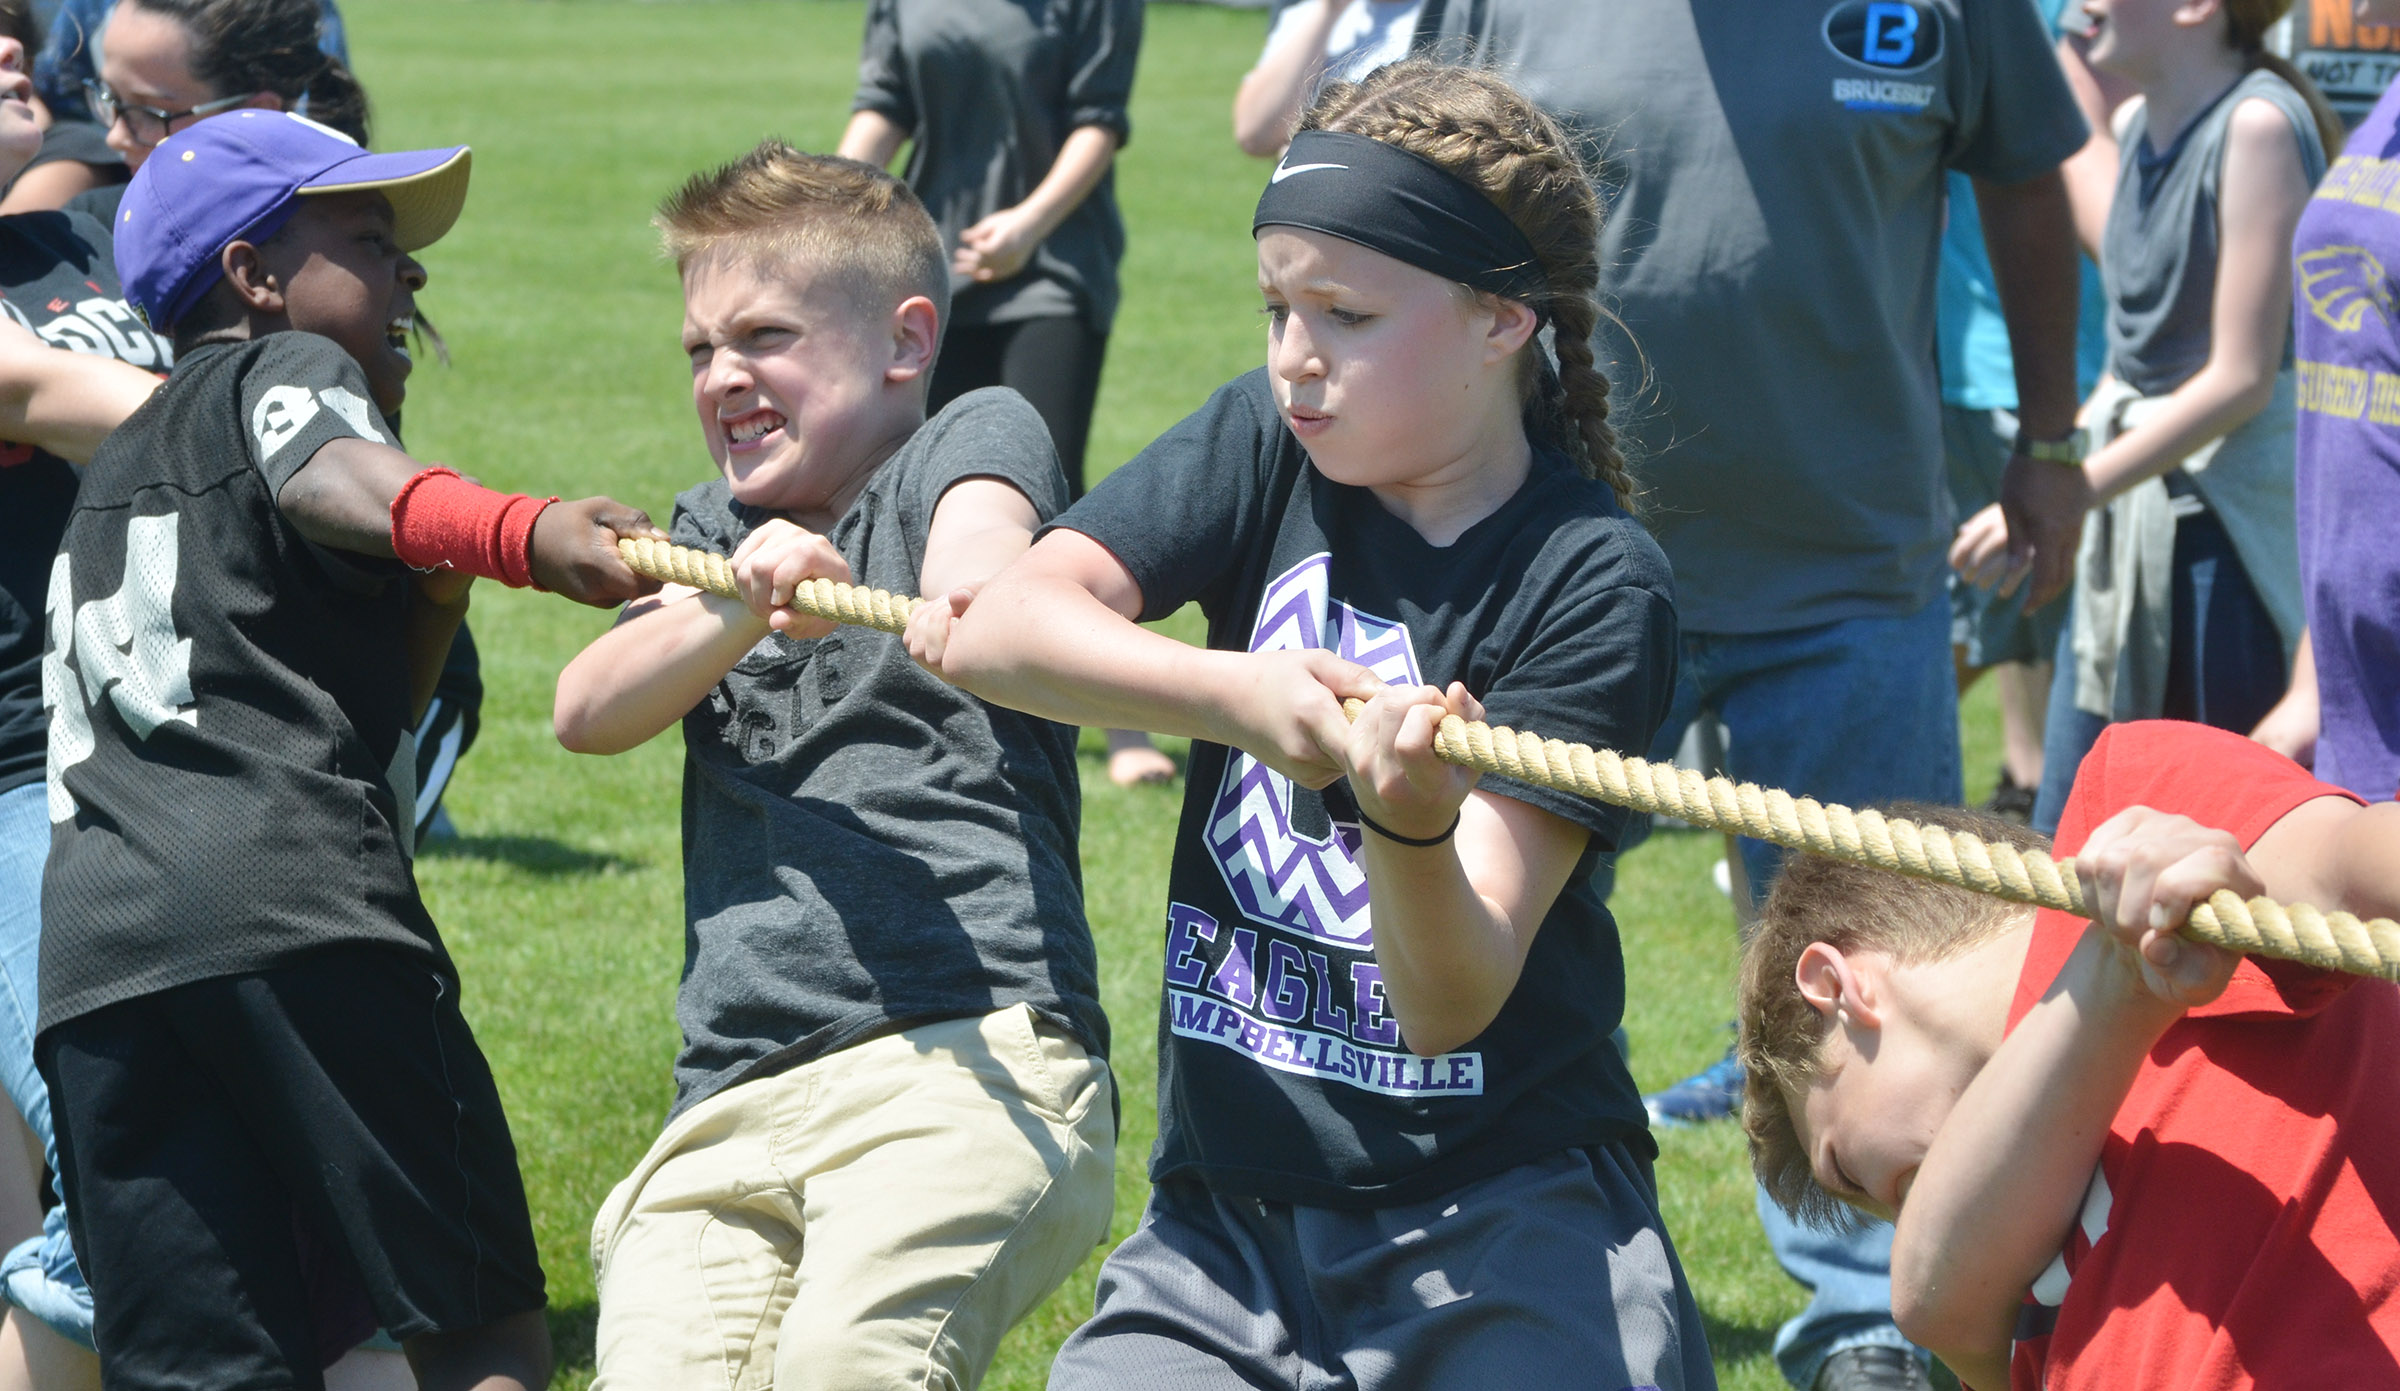 CMS seventh-grader Rylee Petett and her classmates compete in tug of war.